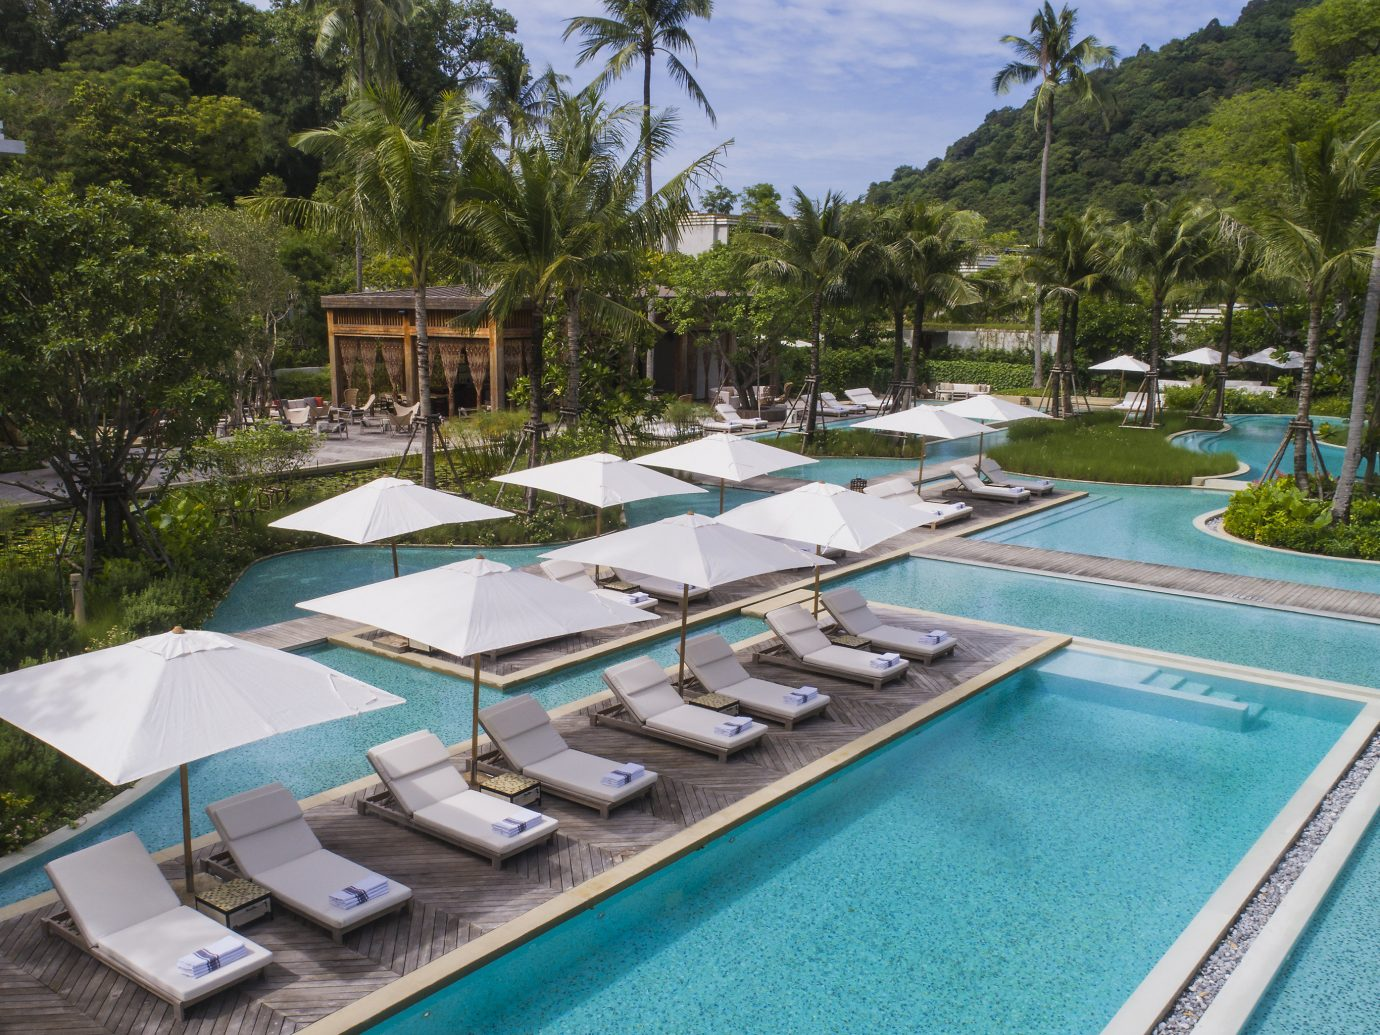 Trip Ideas Winter tree outdoor Resort property leisure swimming pool resort town real estate estate condominium palm tree vacation leisure centre arecales Villa lined